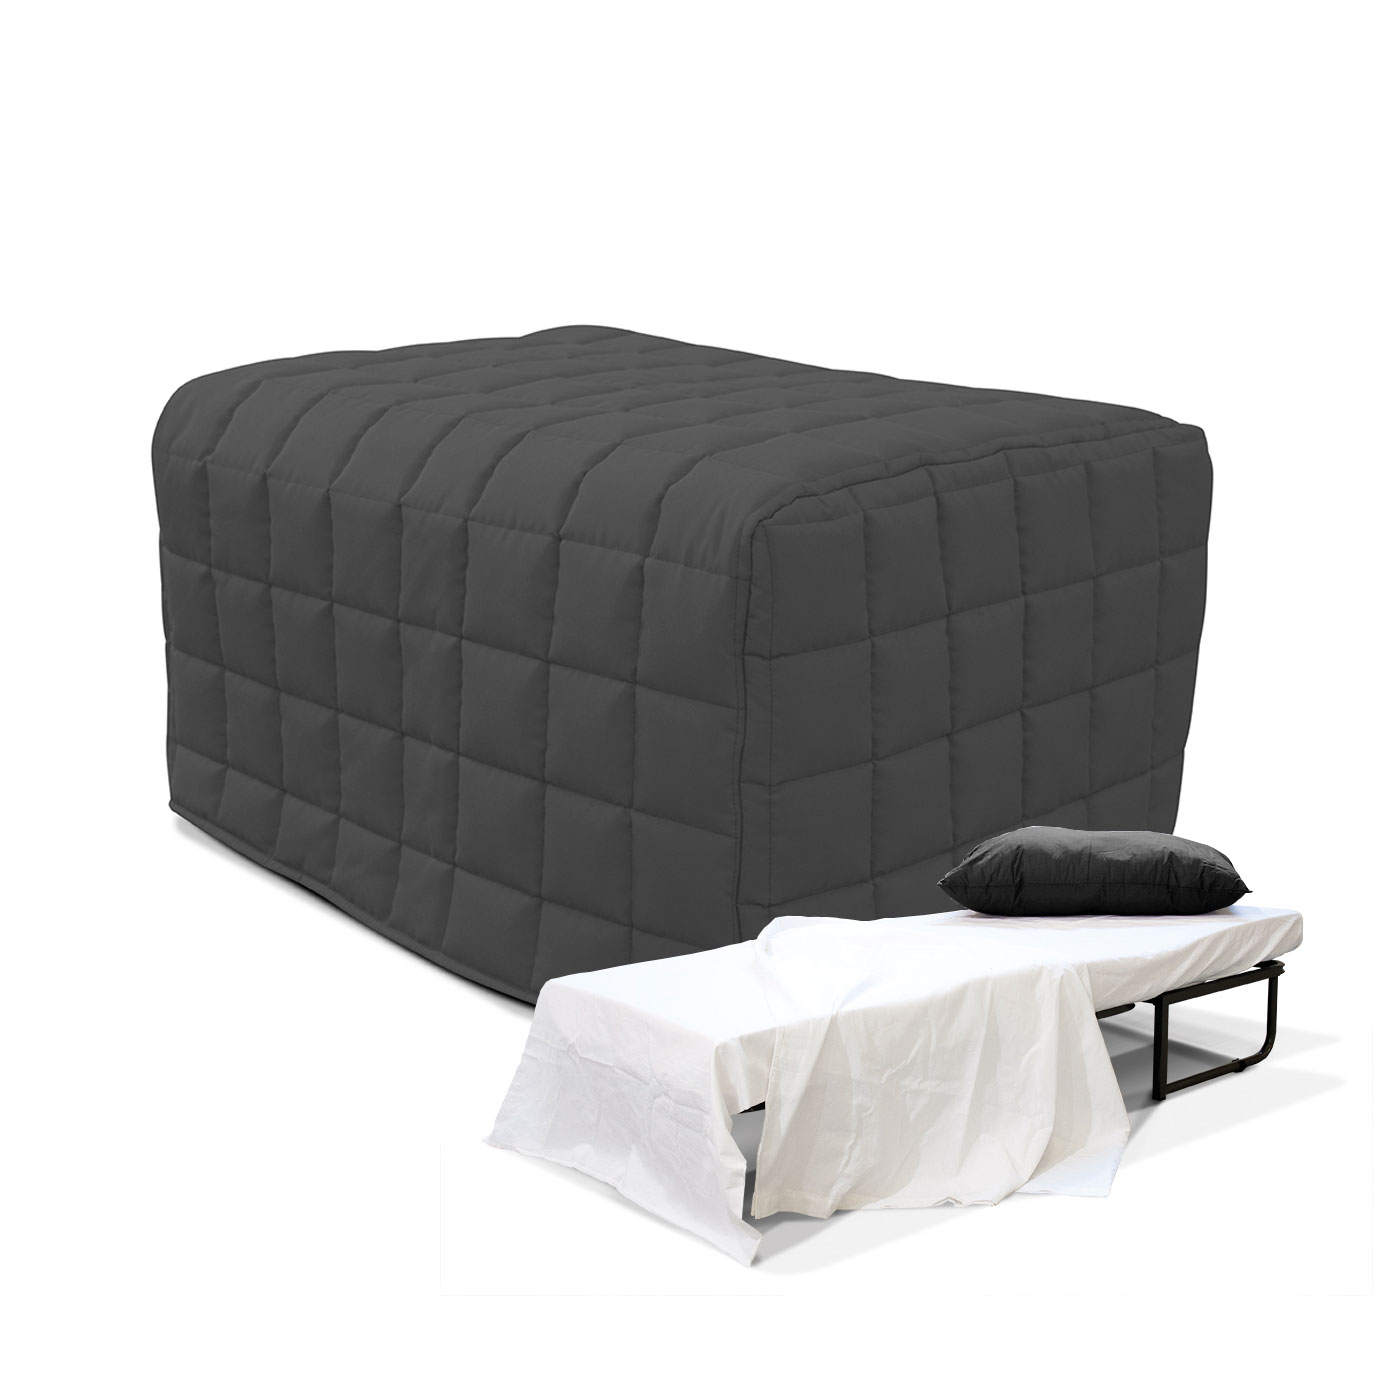 pouf lit free pouf lit en cuir al made in italy with pouf lit trendy fabulous pouf poire pas. Black Bedroom Furniture Sets. Home Design Ideas